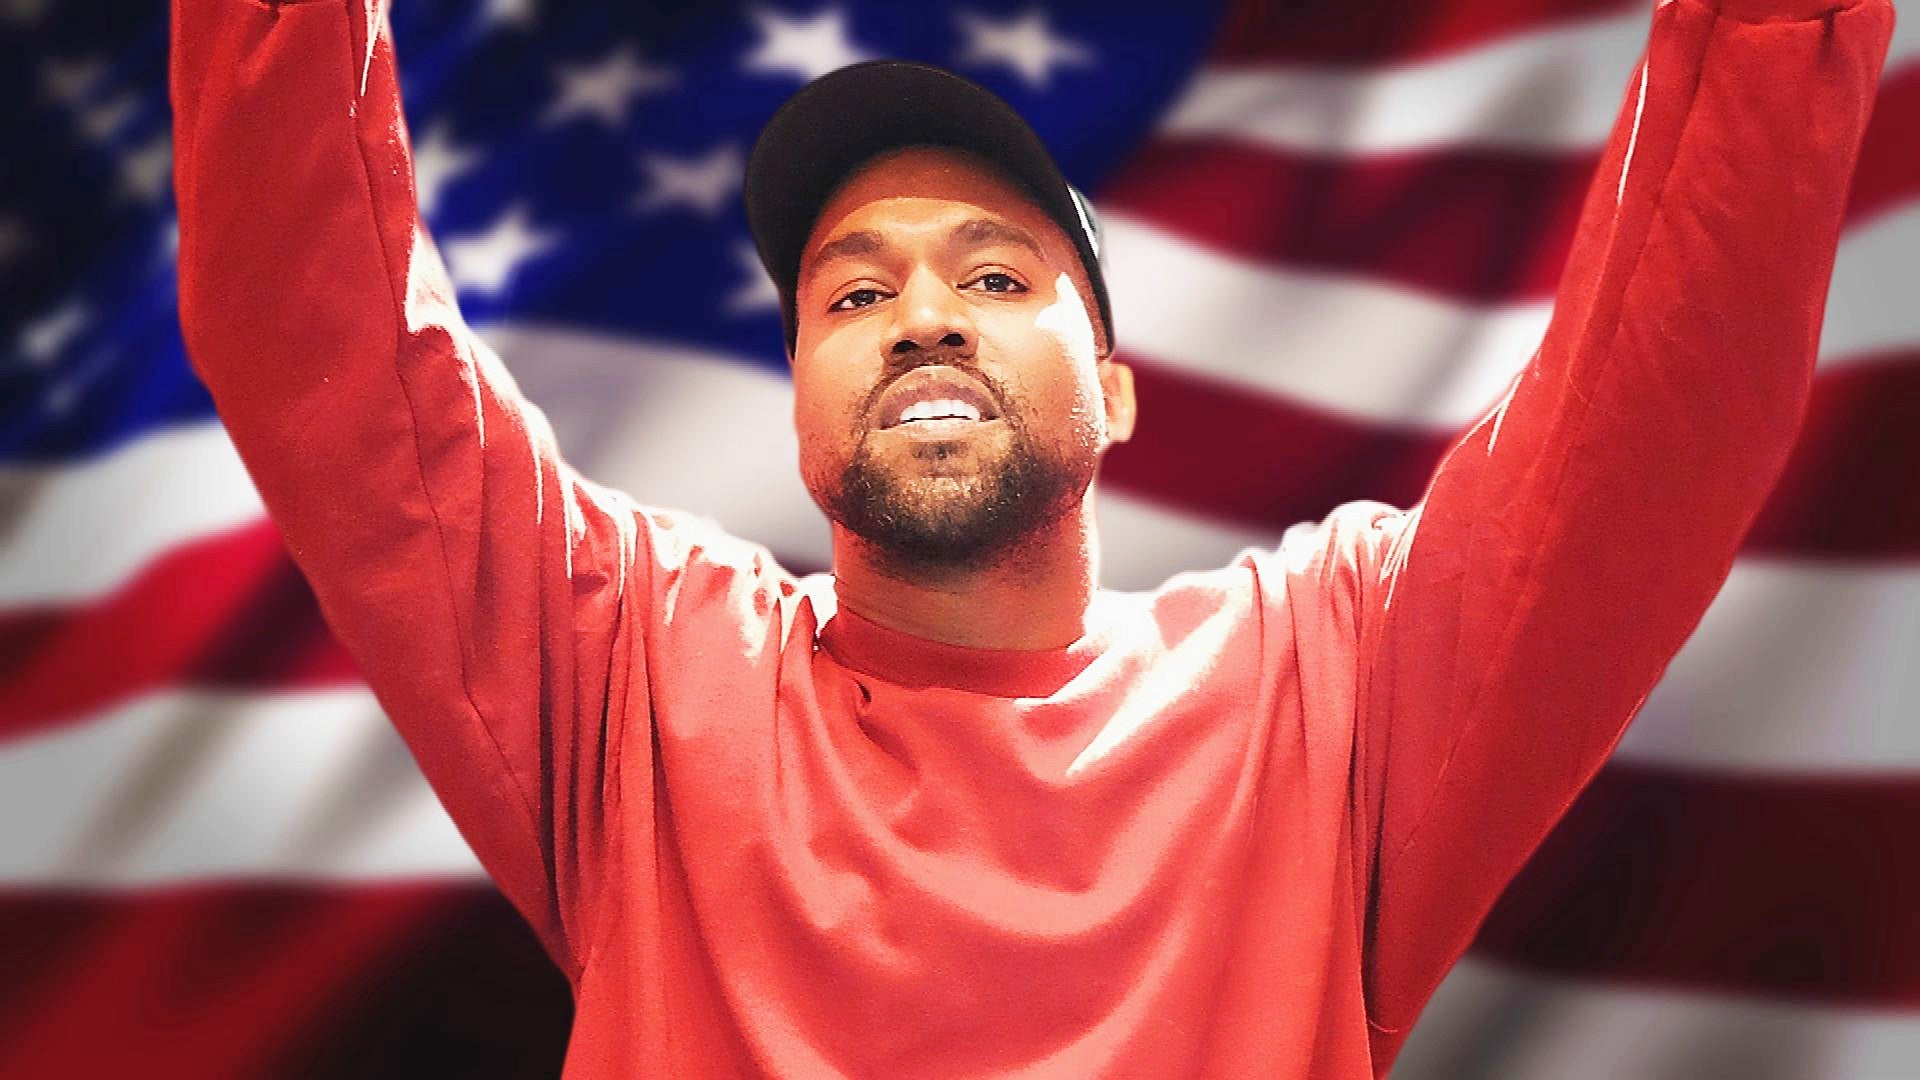 Why Kanye West Should Not Be President Of The United States Todayville